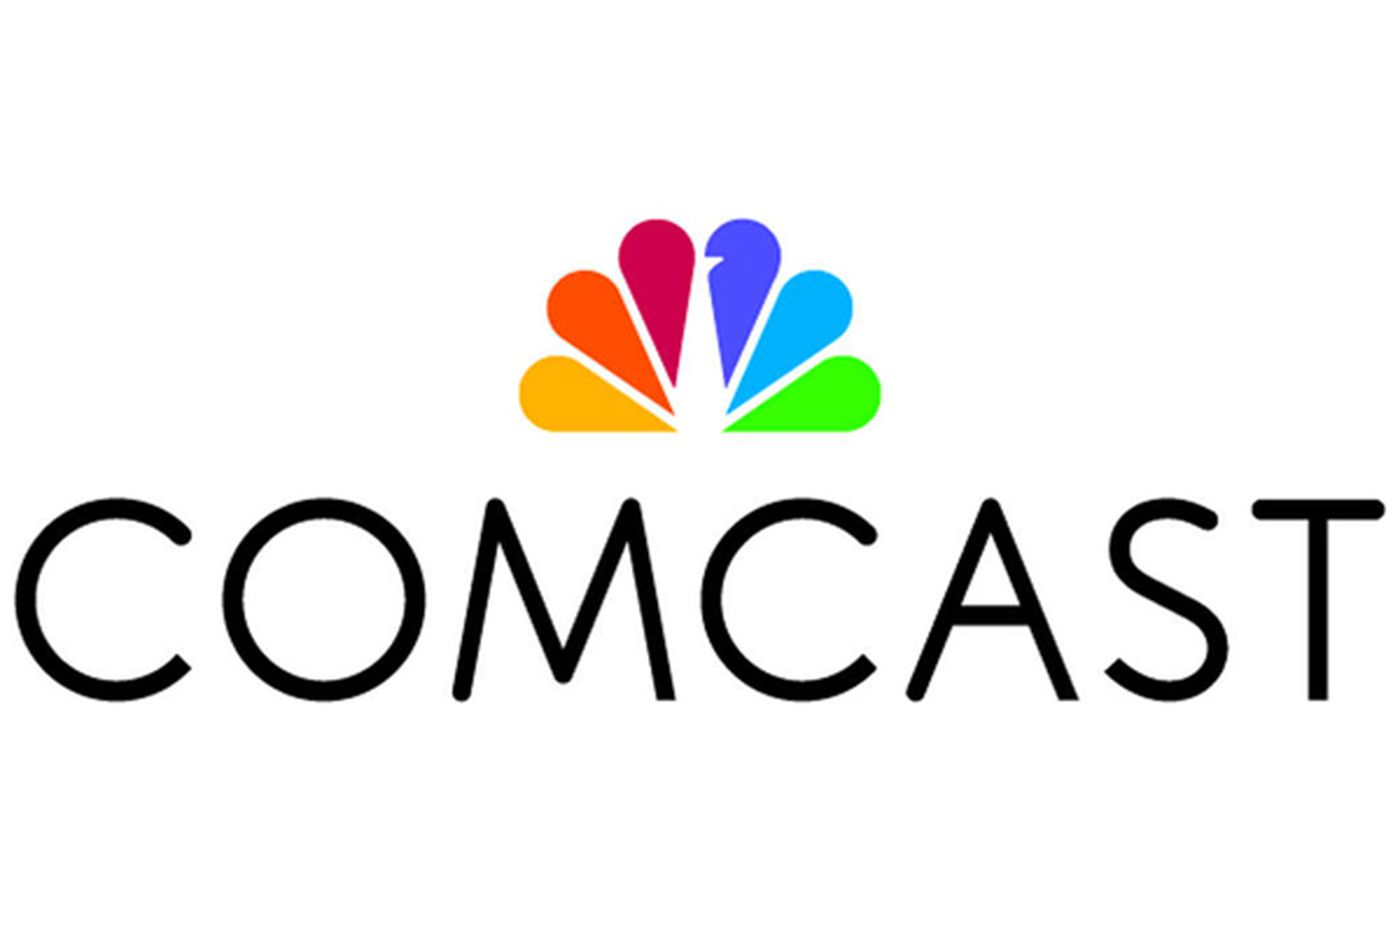 Comcast tops $100B market valuation